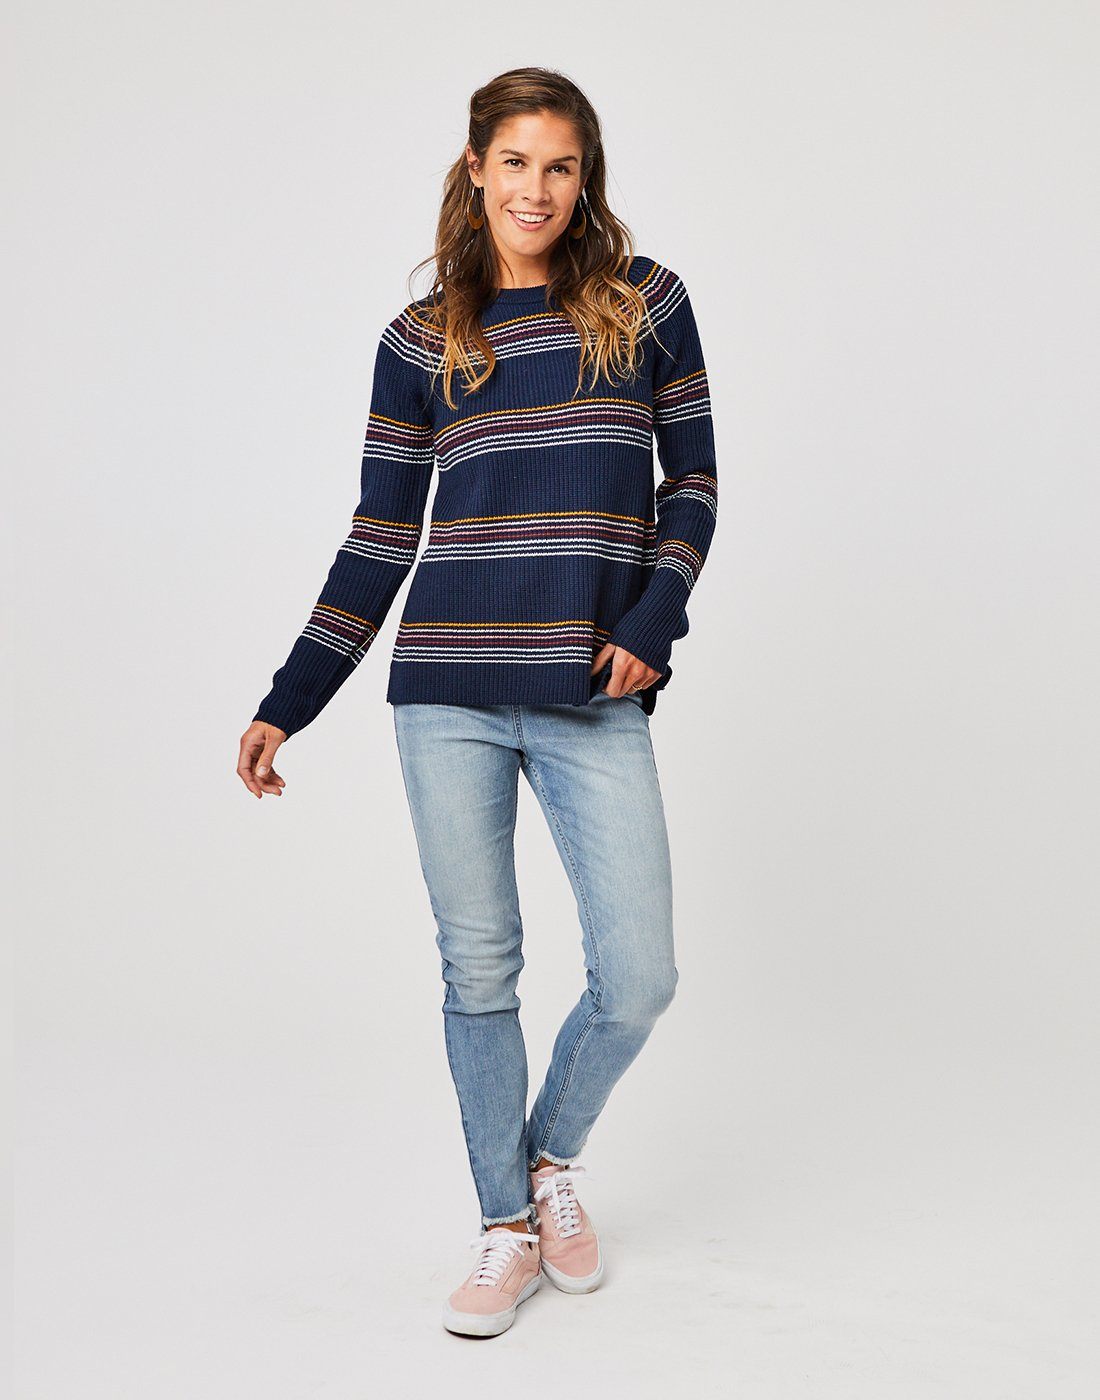 Carve Designs Cabana Sweater